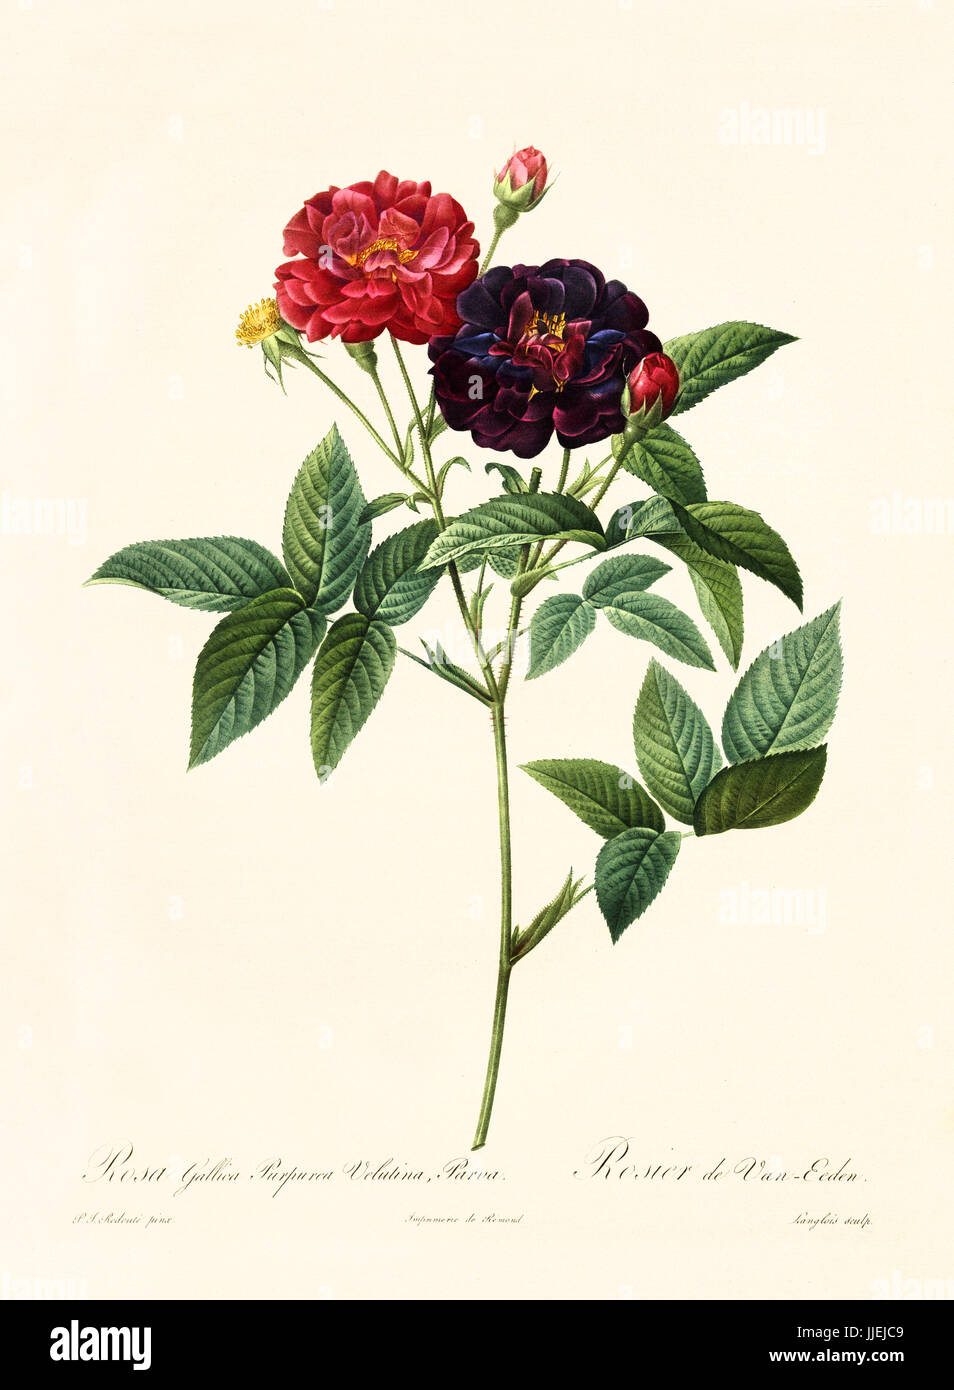 Old illustration of Rosa gallica purpurea velutina parva. Created by P. R. Redoute, published on Les Roses, Imp. - Stock Image